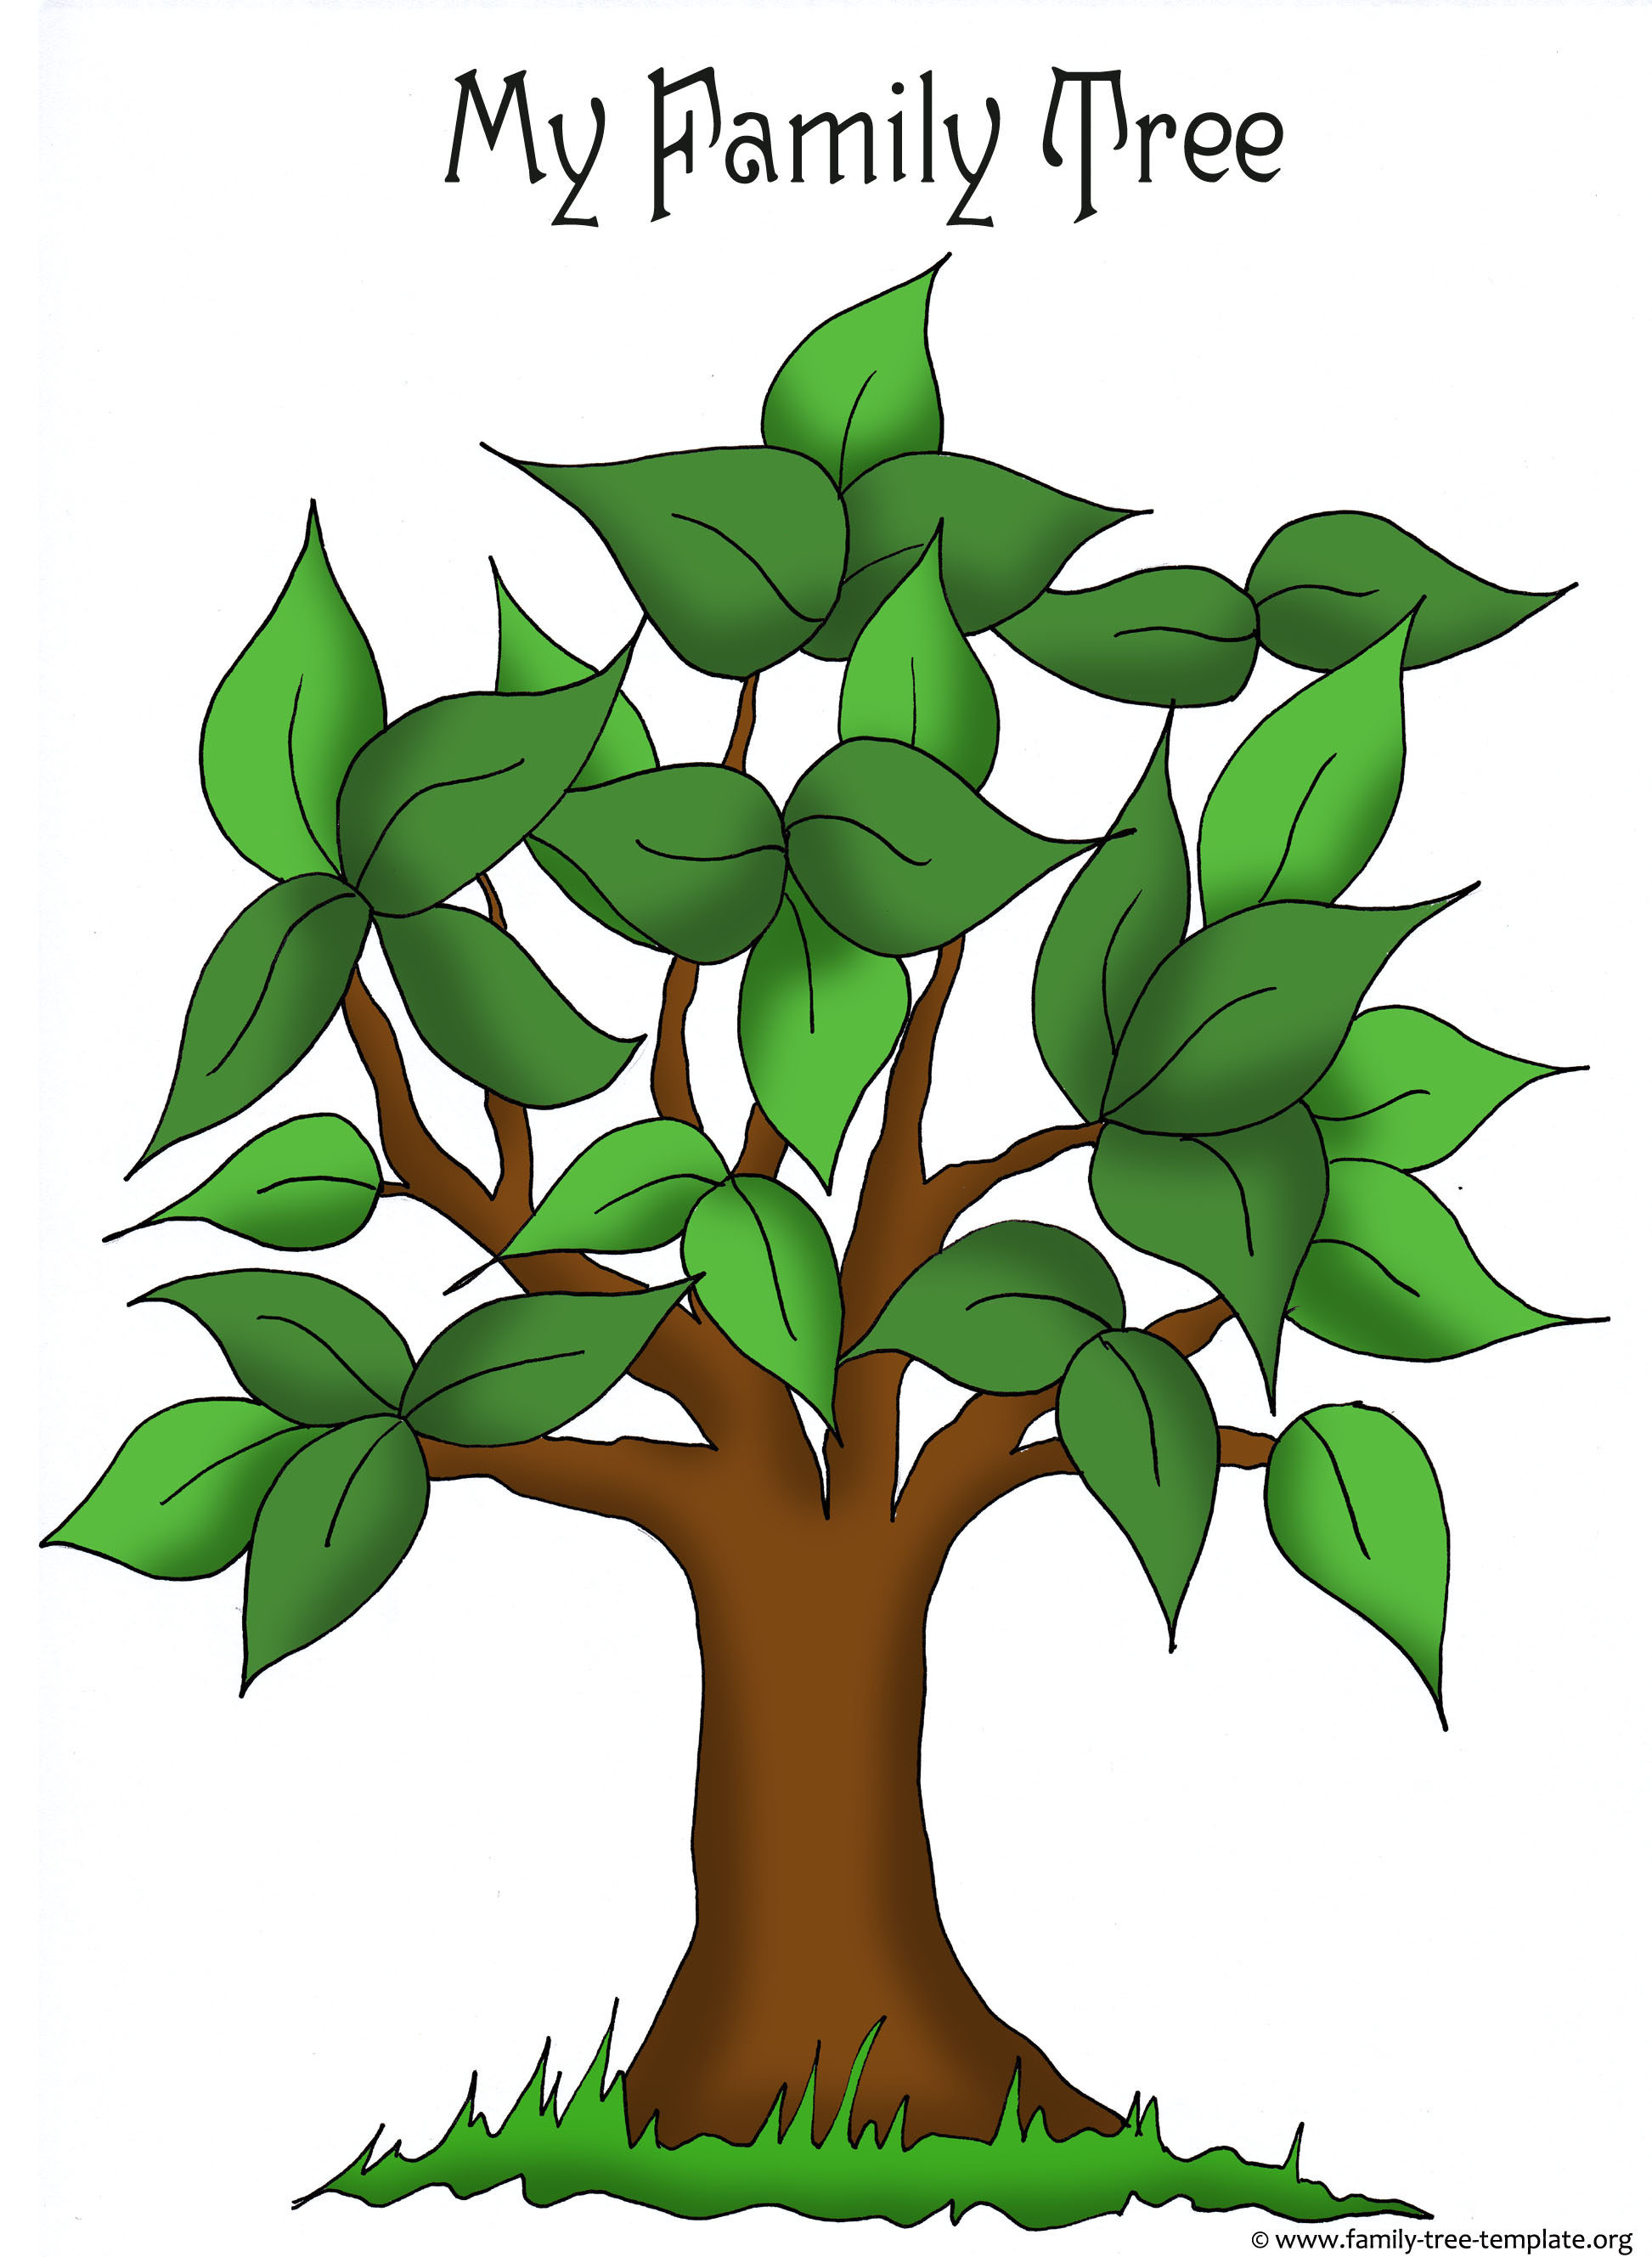 Family Tree Templates & Genealogy Clipart for Your Ancestry Map.